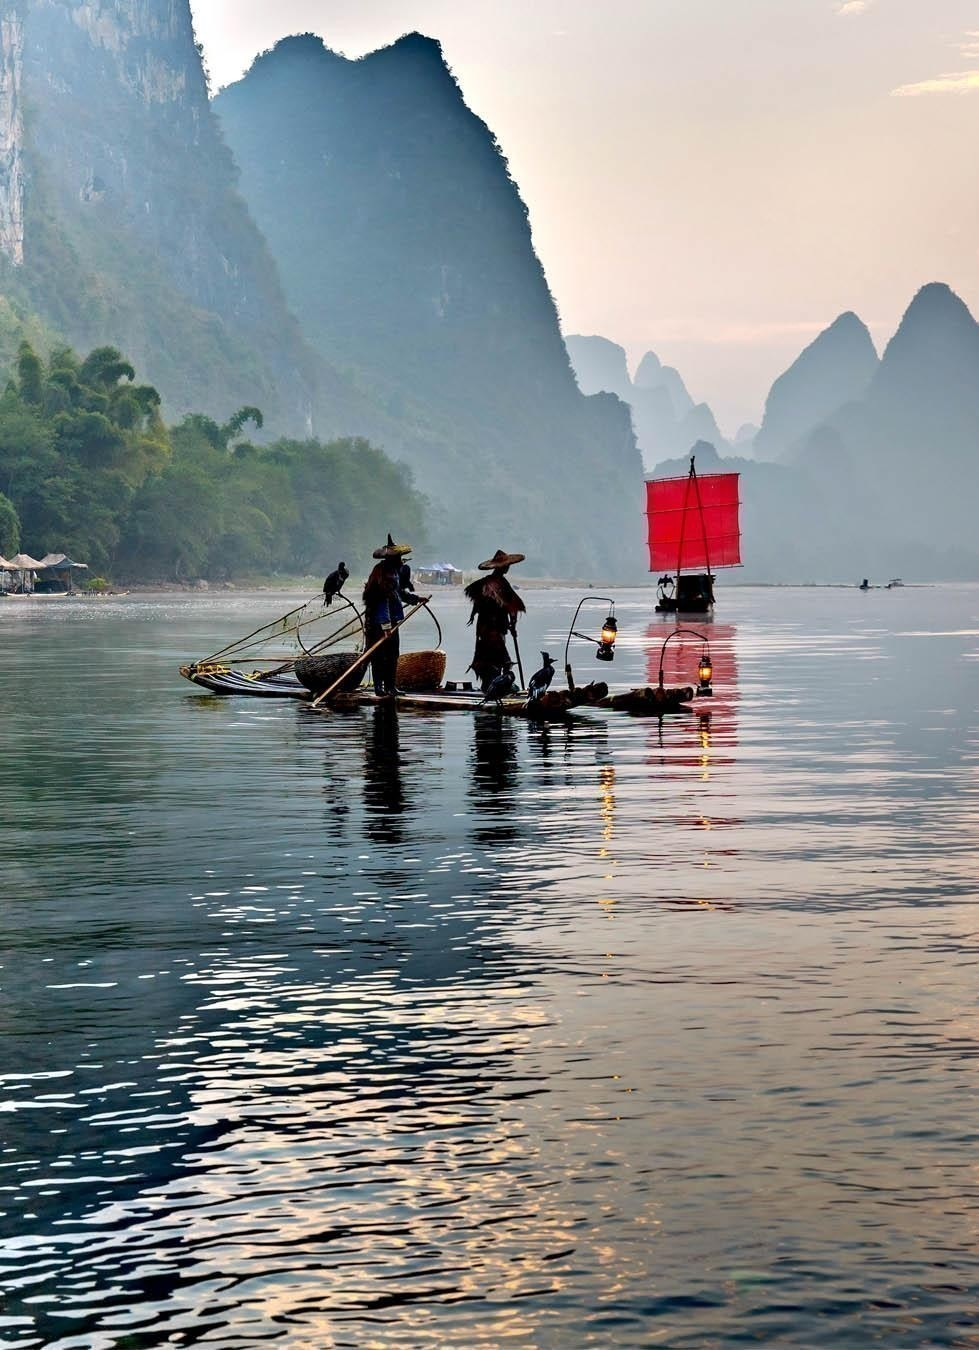 Fisherman stands on traditional bamboo boats at sunrise (boat with a red sail in the background) - The Li River, Xingping | China Travel Guide